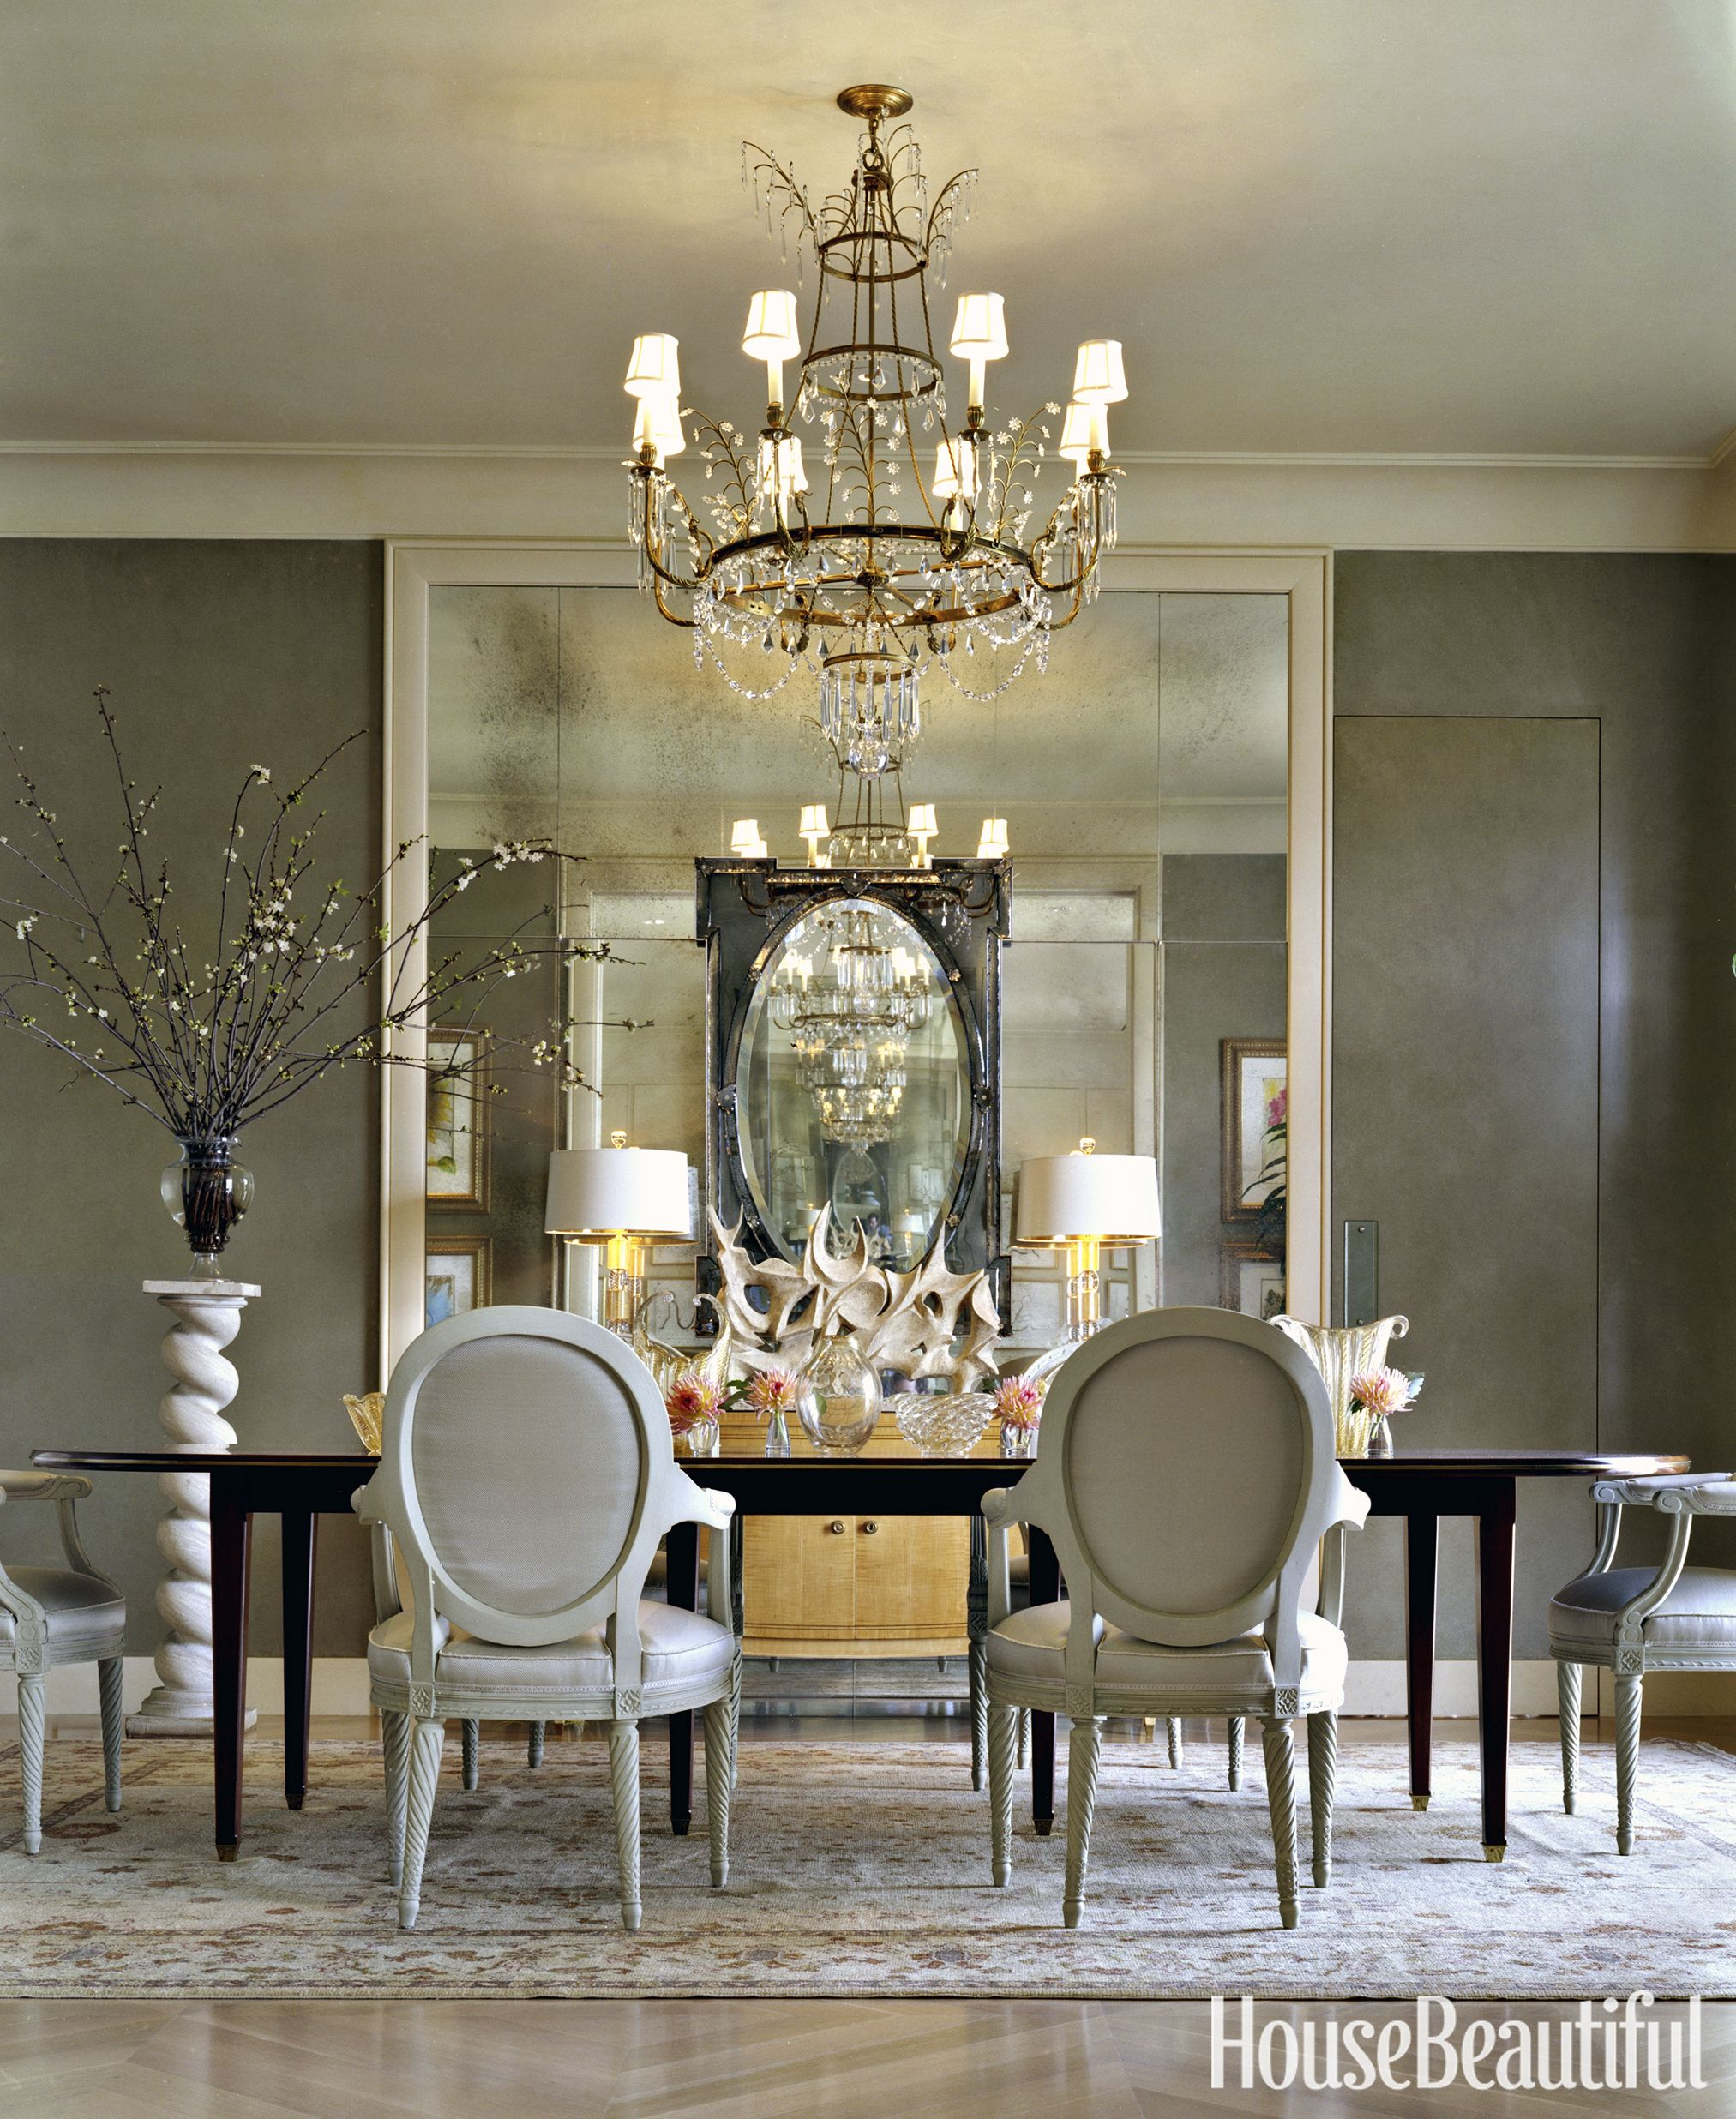 Www.housebeautiful.com 25 Best Interior Decorating Secrets  Decorating Tips And Tricks